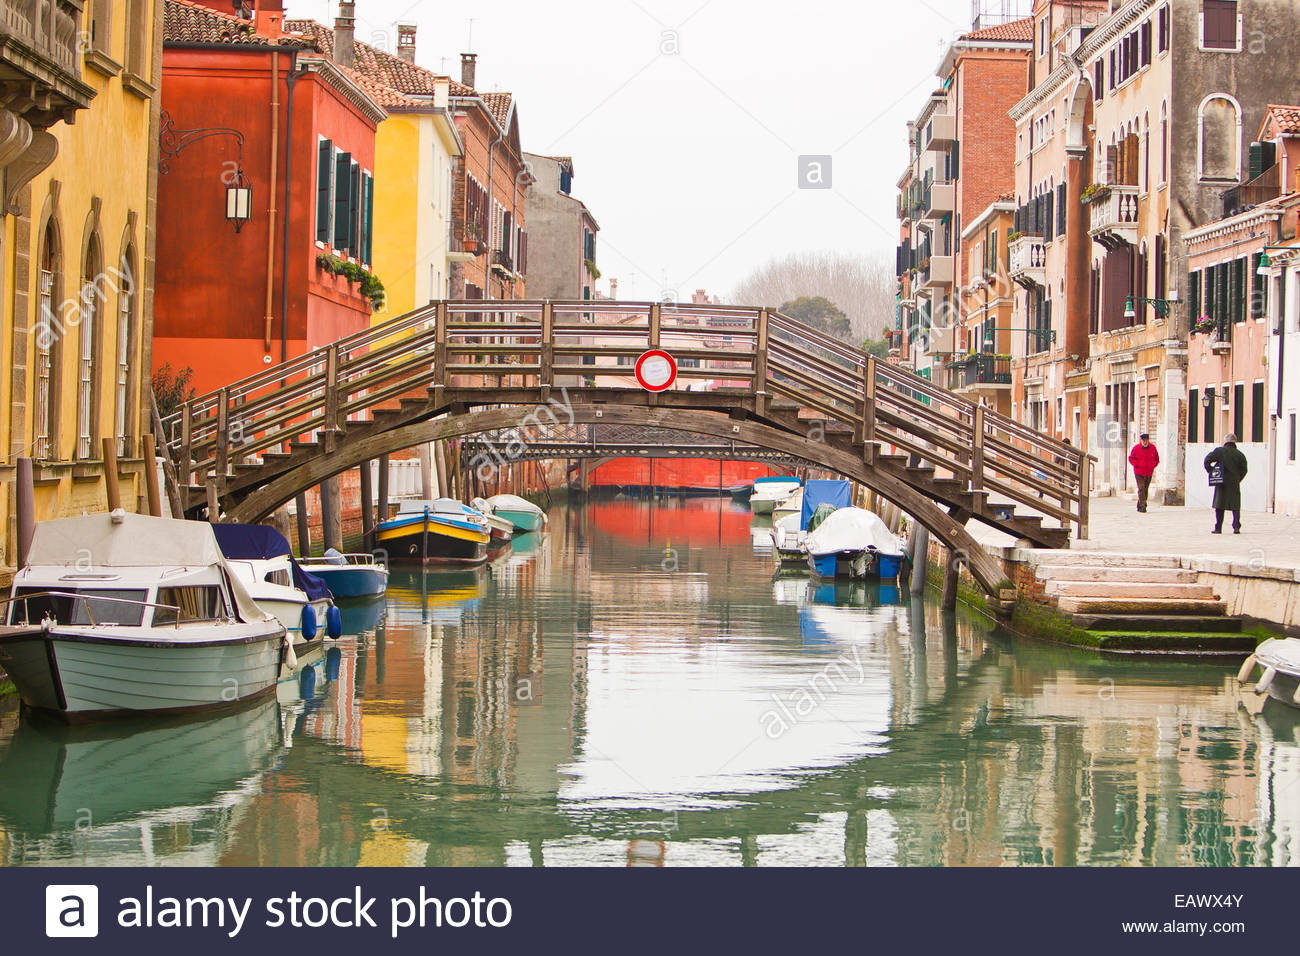 Renaissance era buildings, boats, and a wood bridge cast colorful reflections on a side canal. - Stock Image